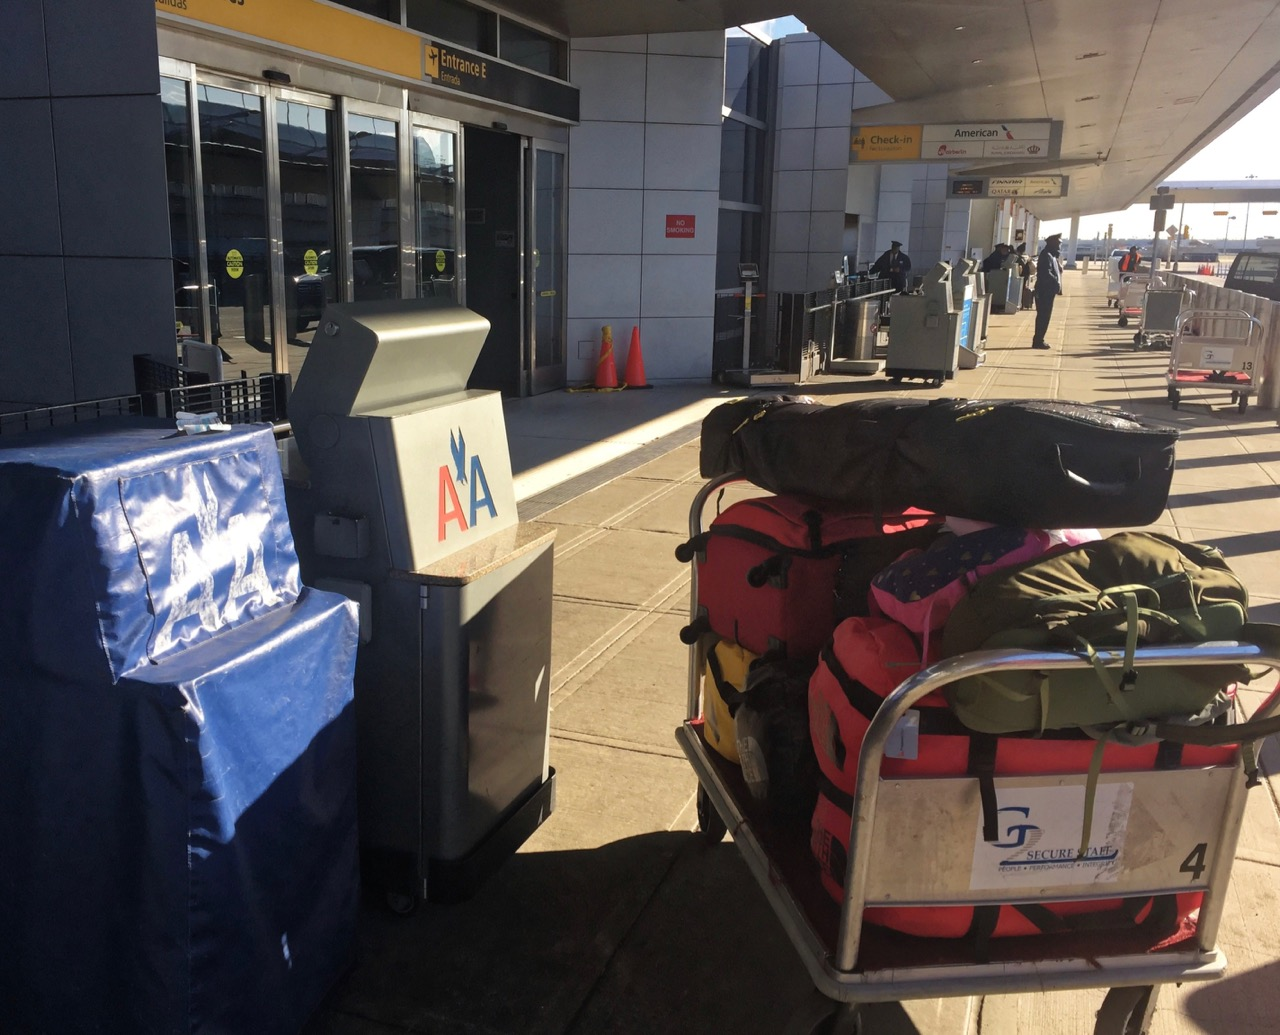 American Airlines Kerbside Check-In | Point Hacks